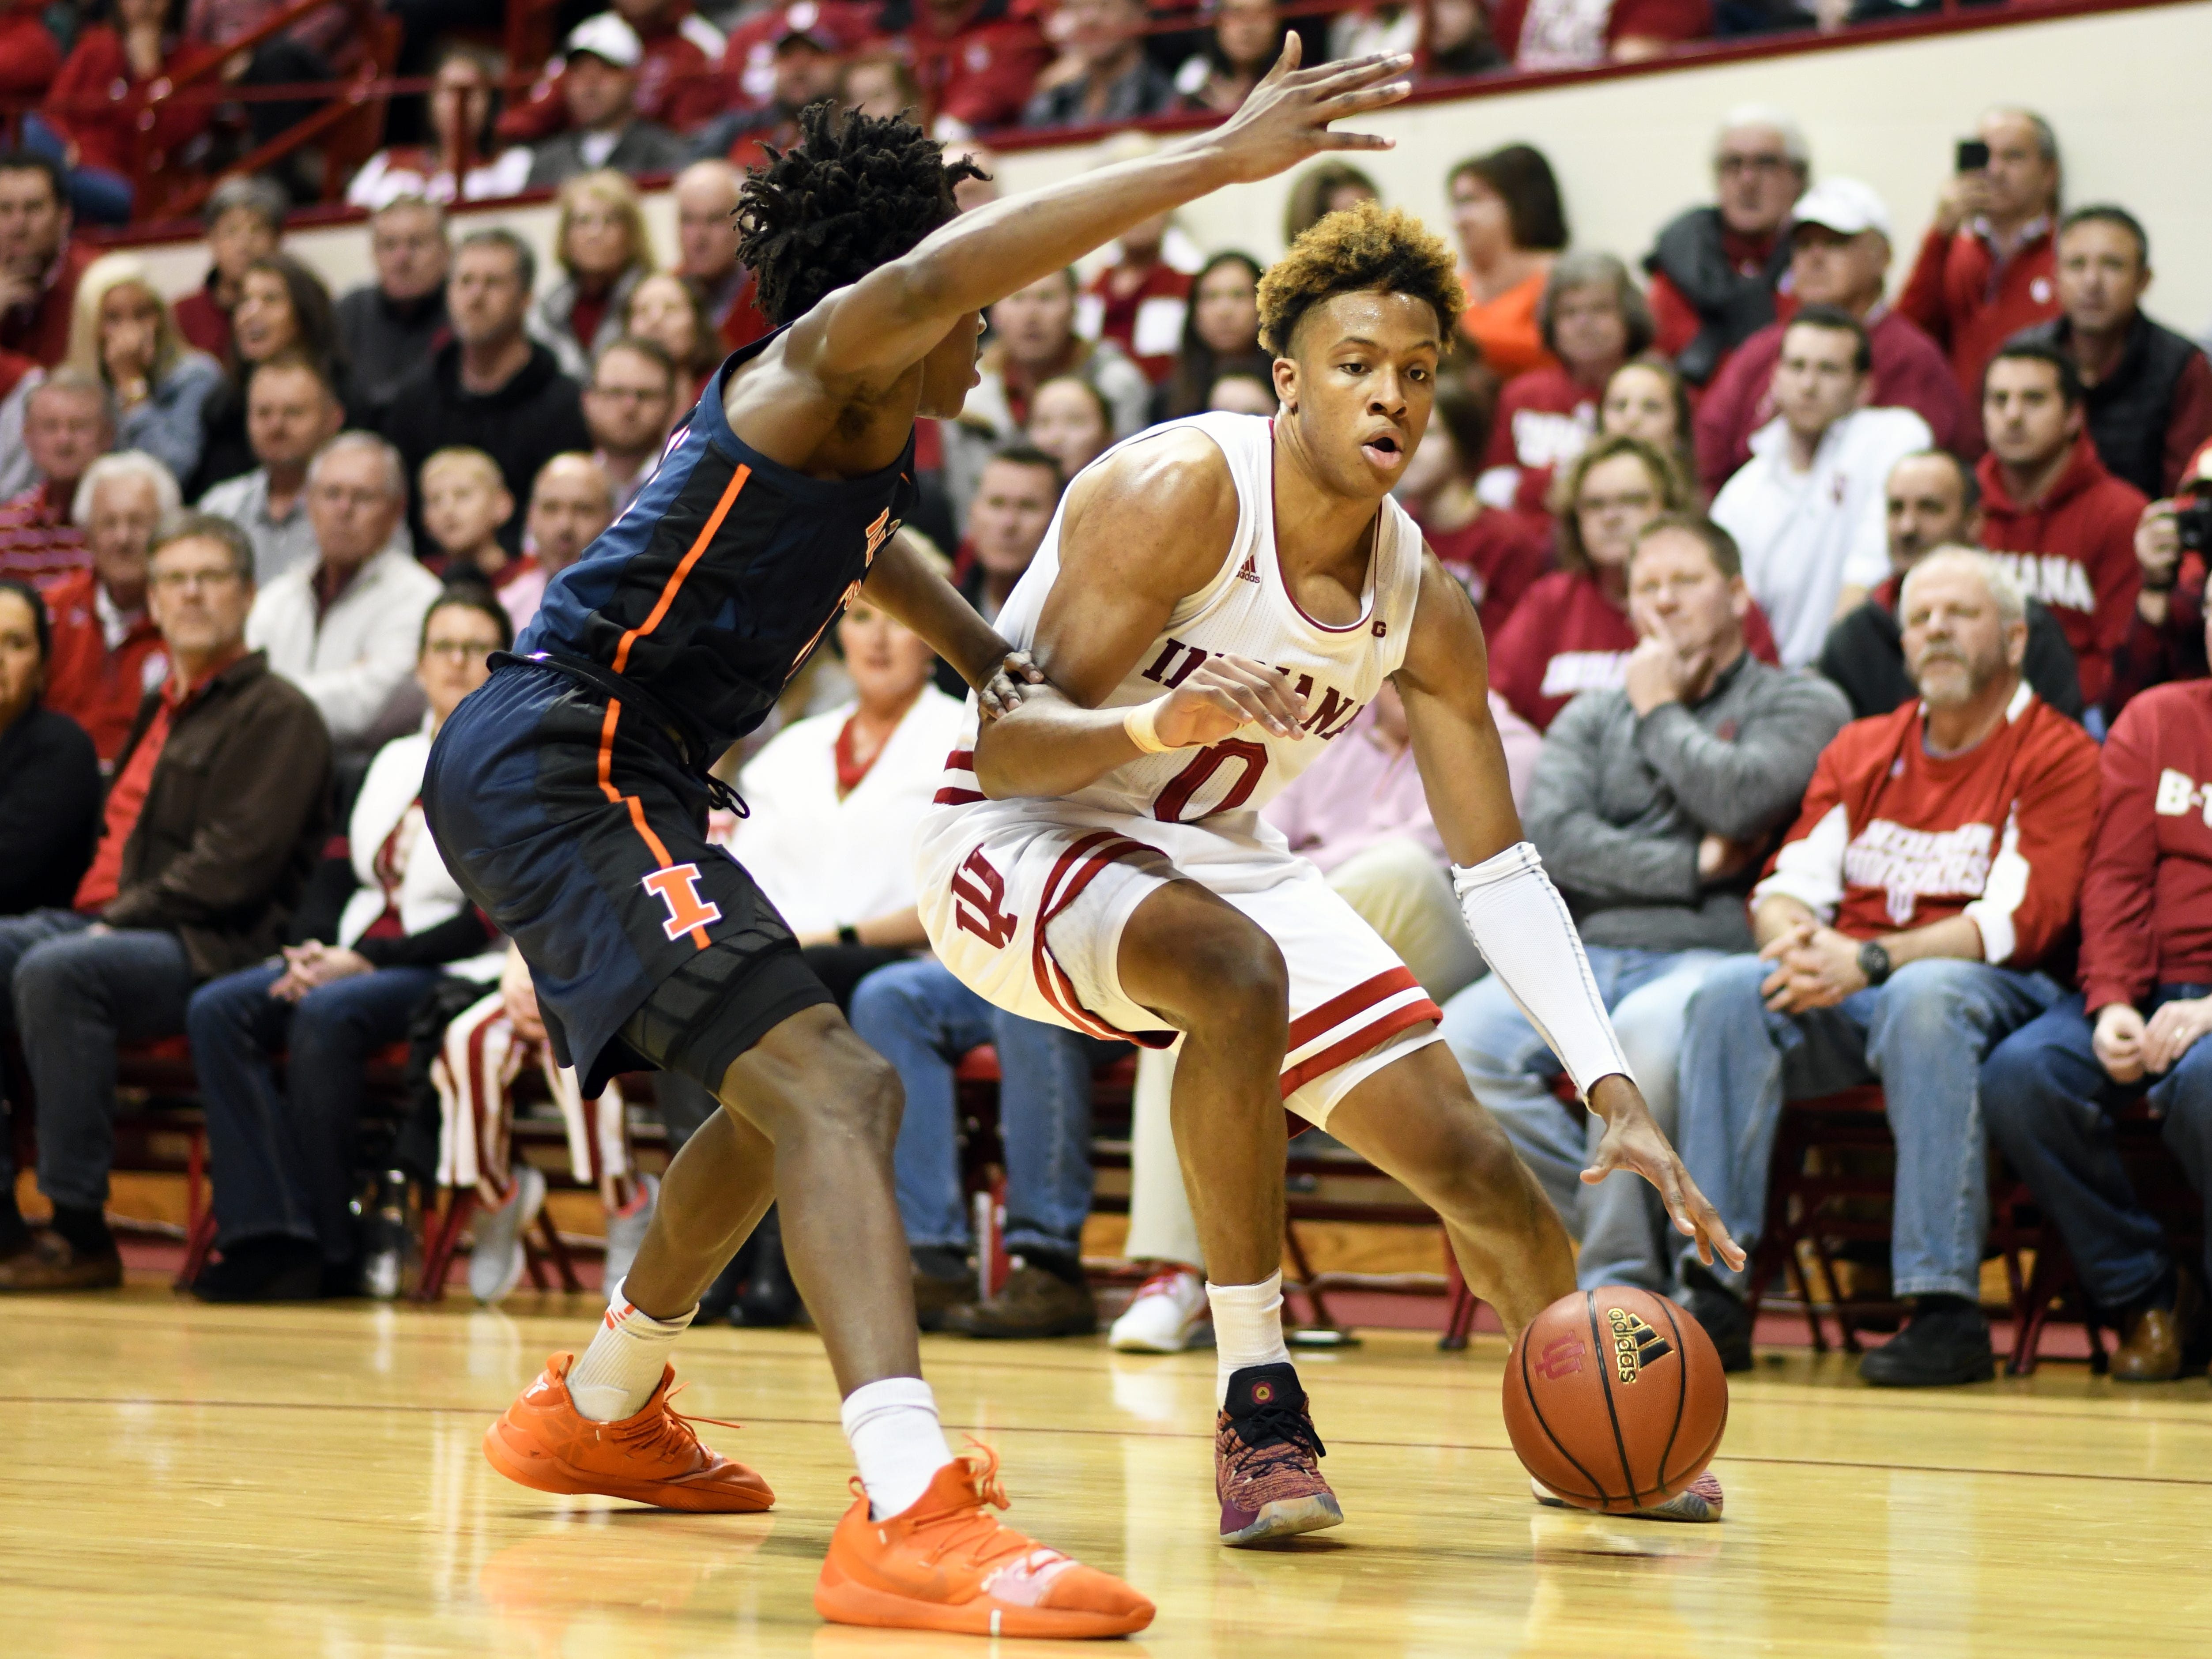 Indiana Hoosiers guard Romeo Langford (0) backs down his defender during the game against Illinois at Simon Skjodt Assembly Hall in Bloomington, Ind., on Thursday, Jan. 3, 2019.